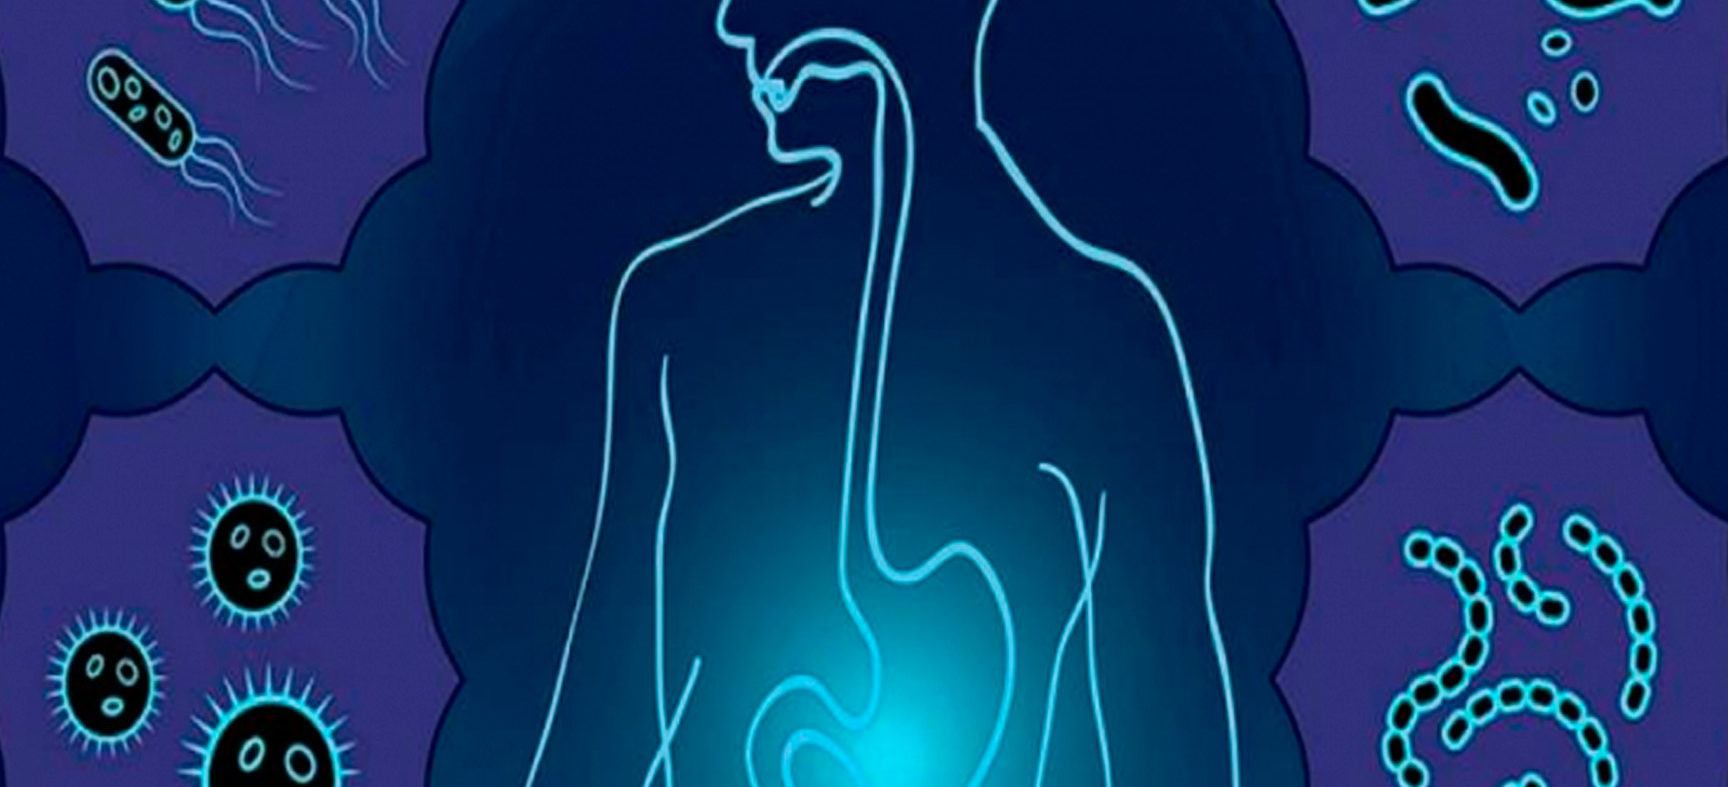 Studies to Explore the Microbiome's Role in Oral and Systemic Health